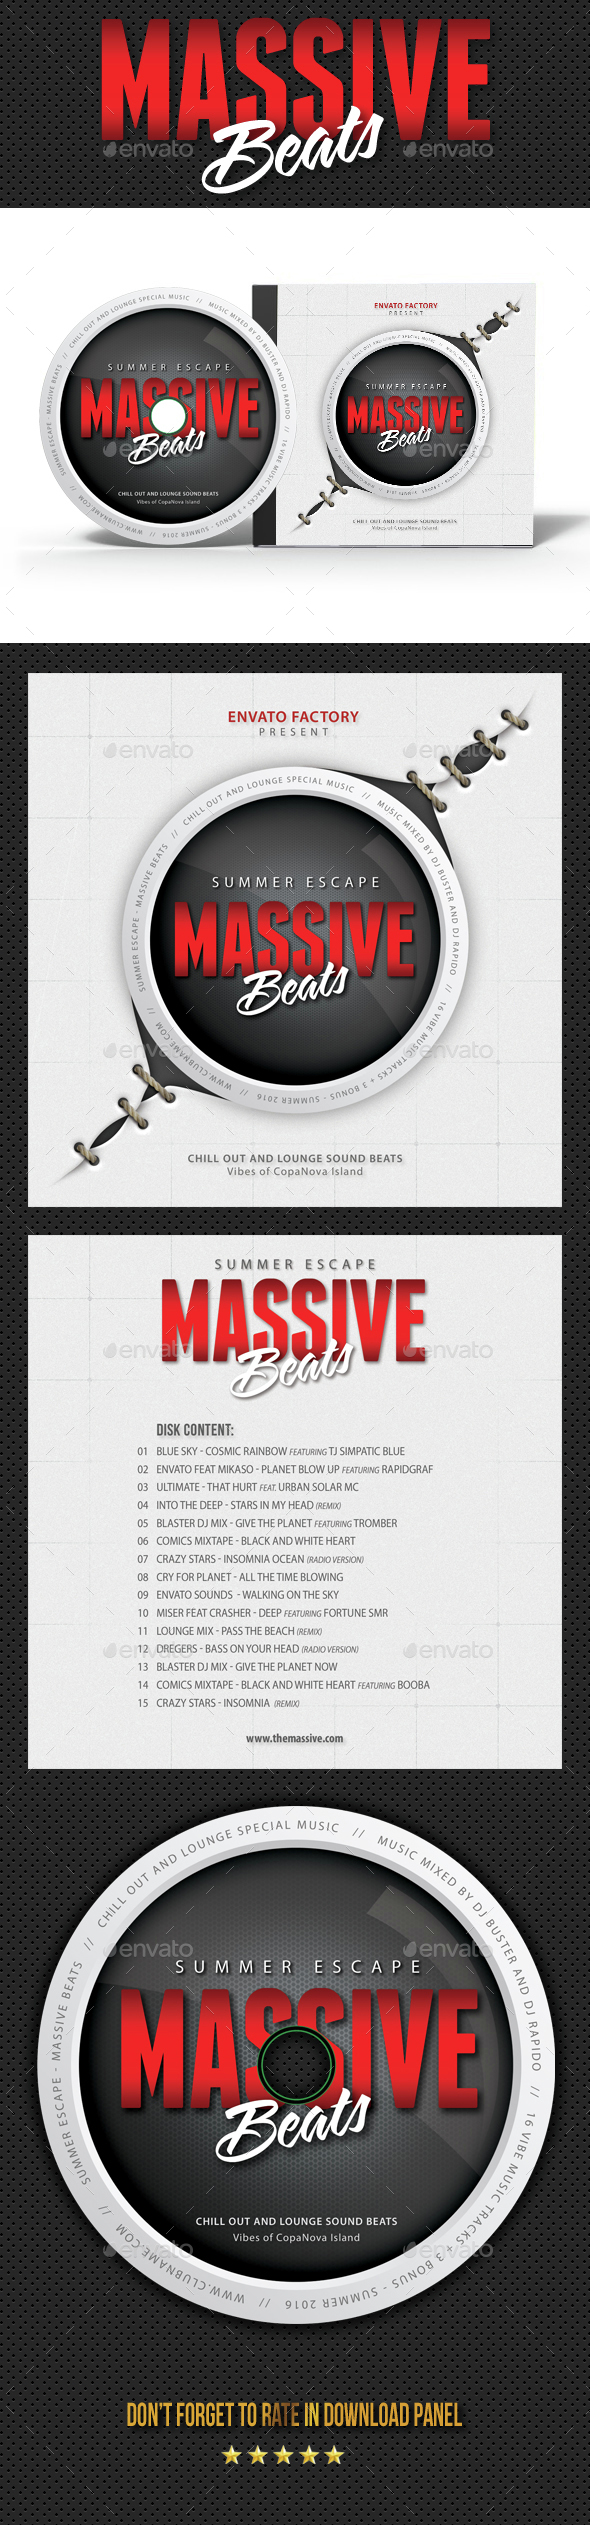 Massive Party Event CD Cover Artwork - CD & DVD Artwork Print Templates